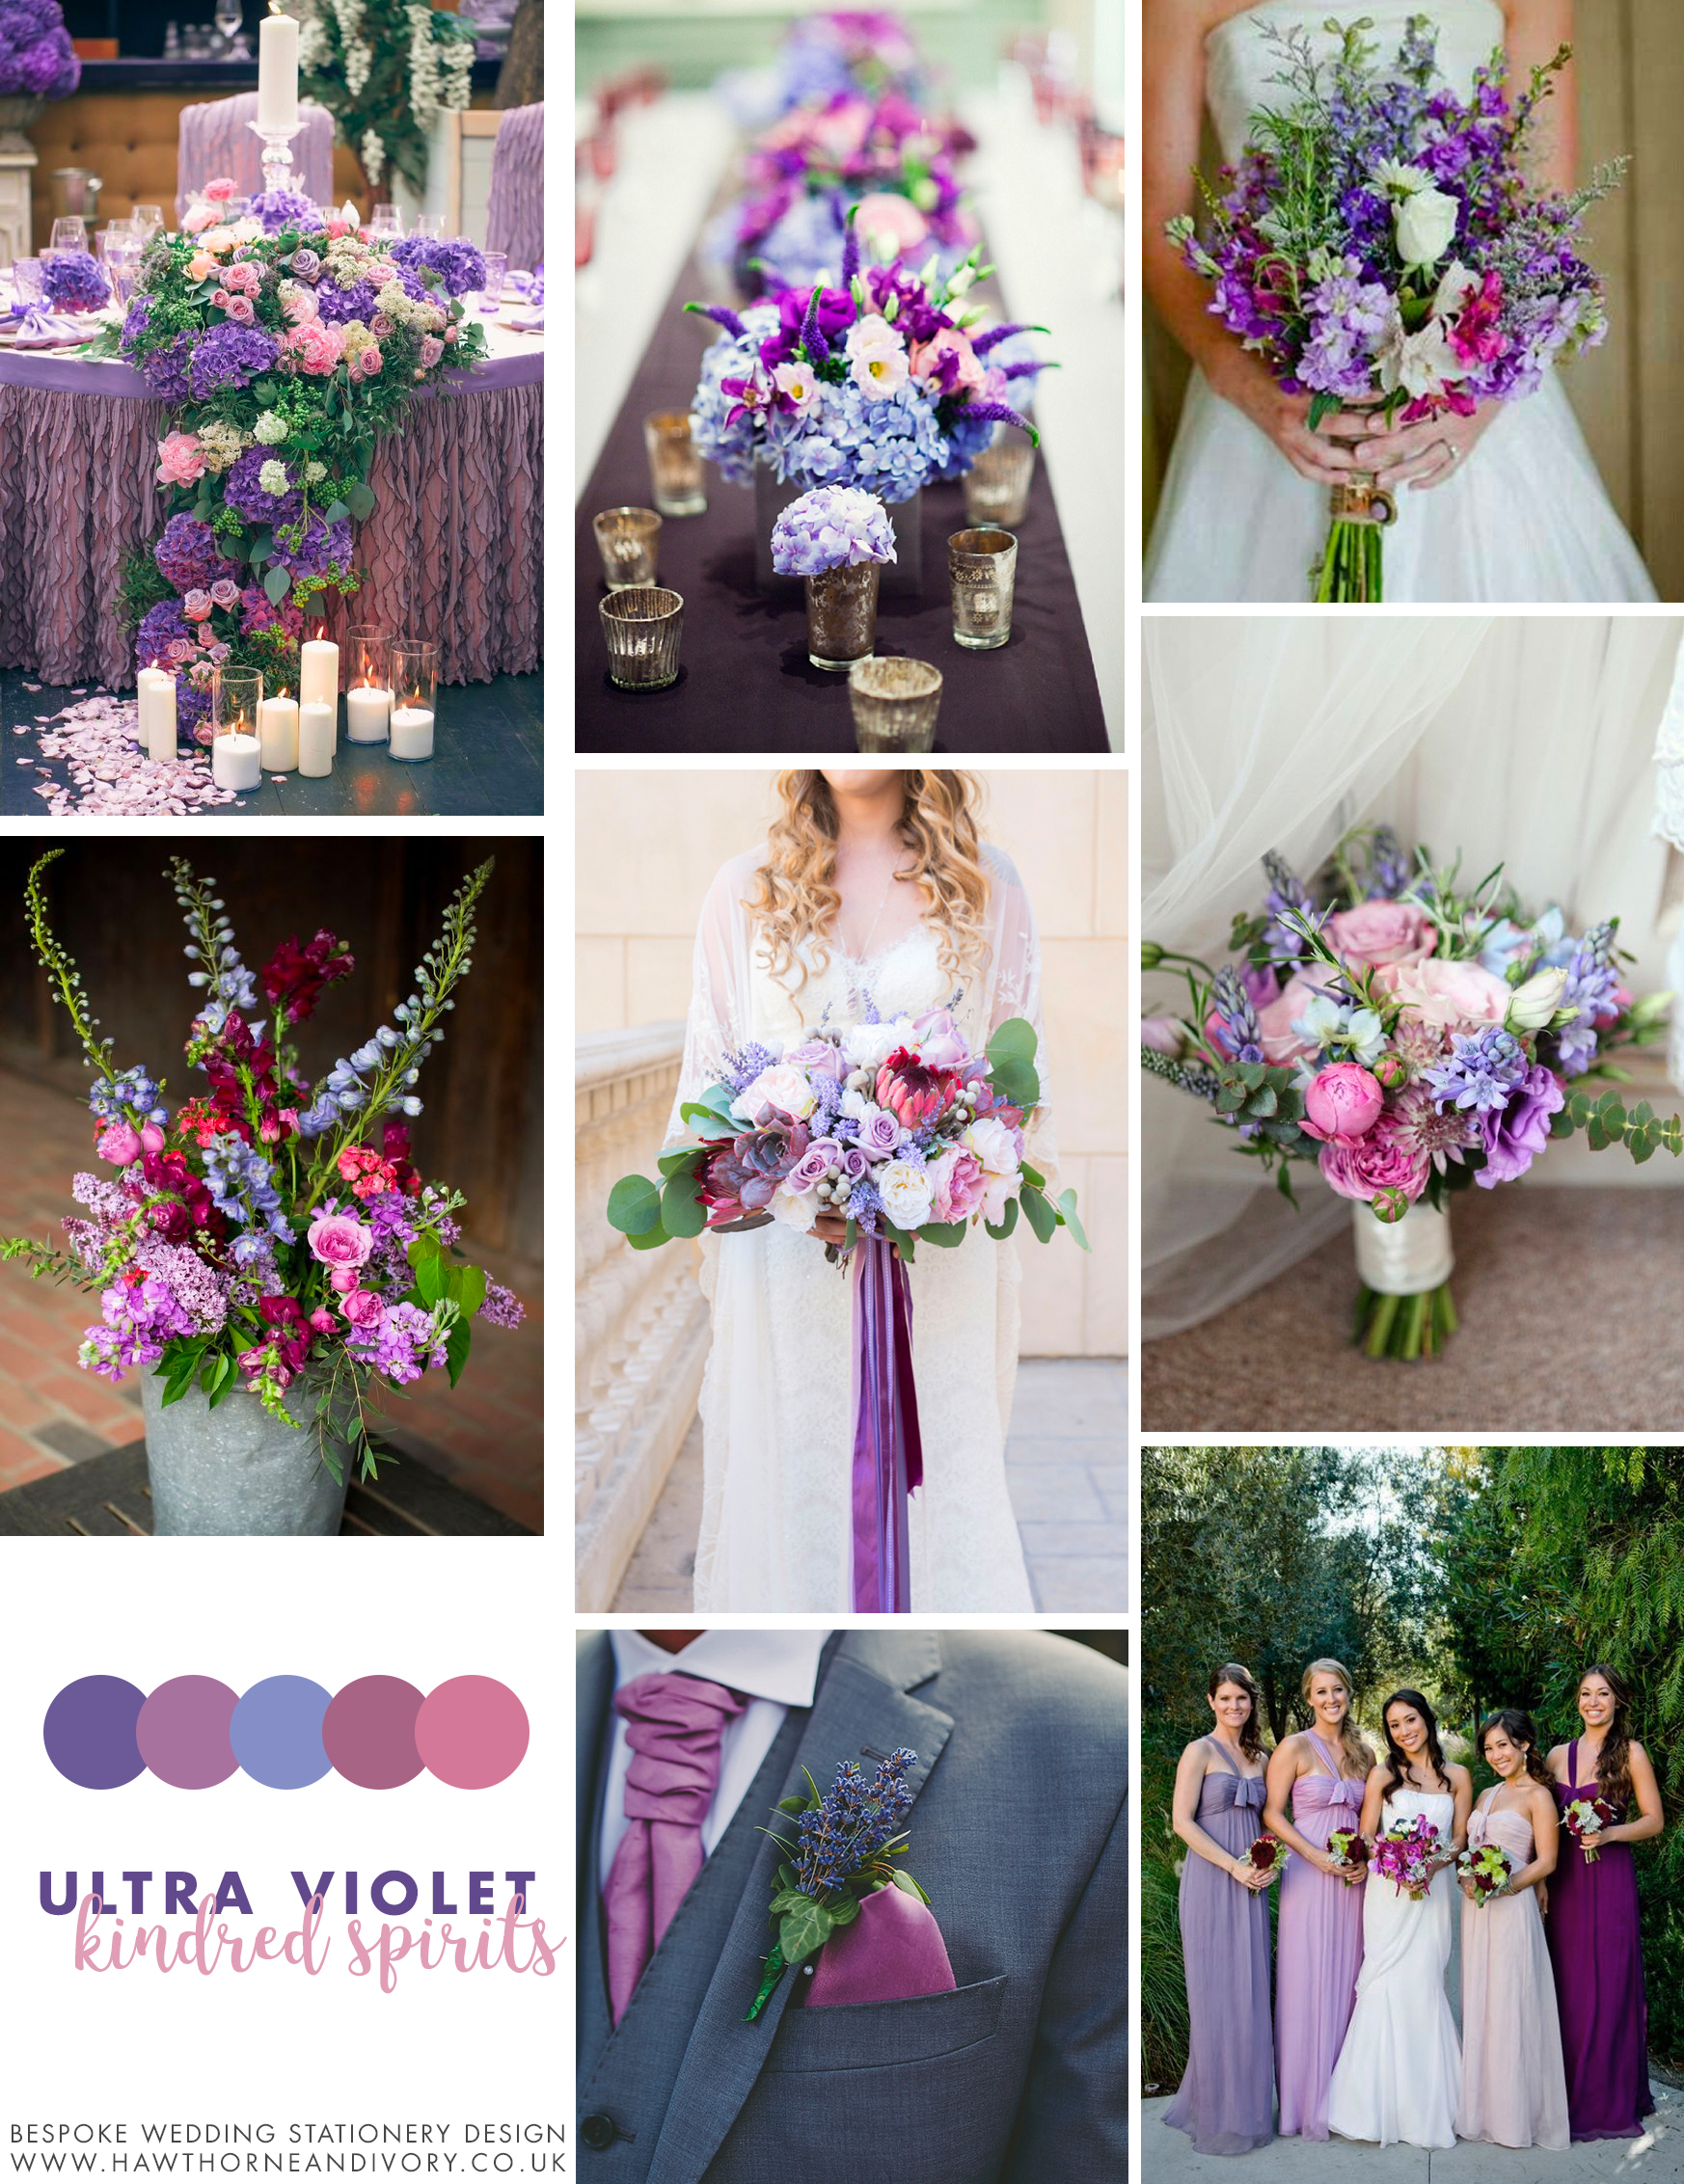 ultra violet pantone kindred spirits wedding colour palette.jpg